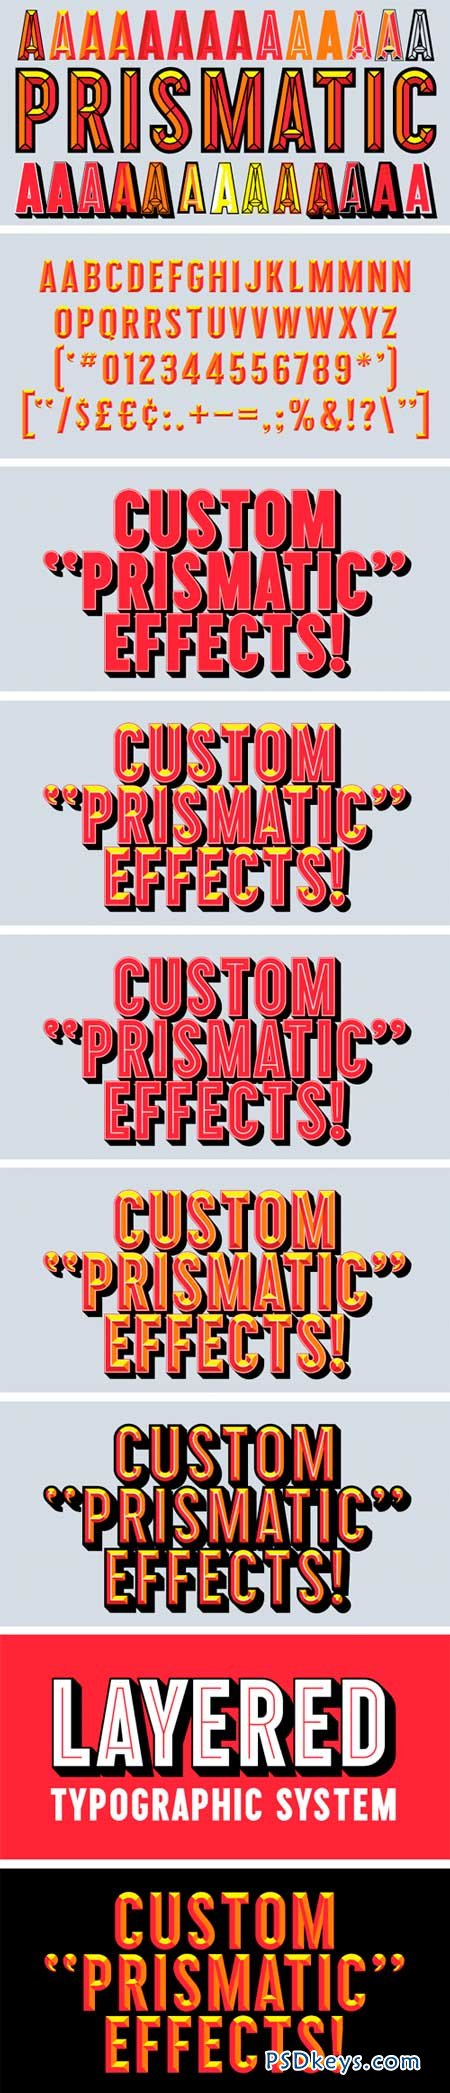 Prismatic Font Family - 11 Fonts for $225